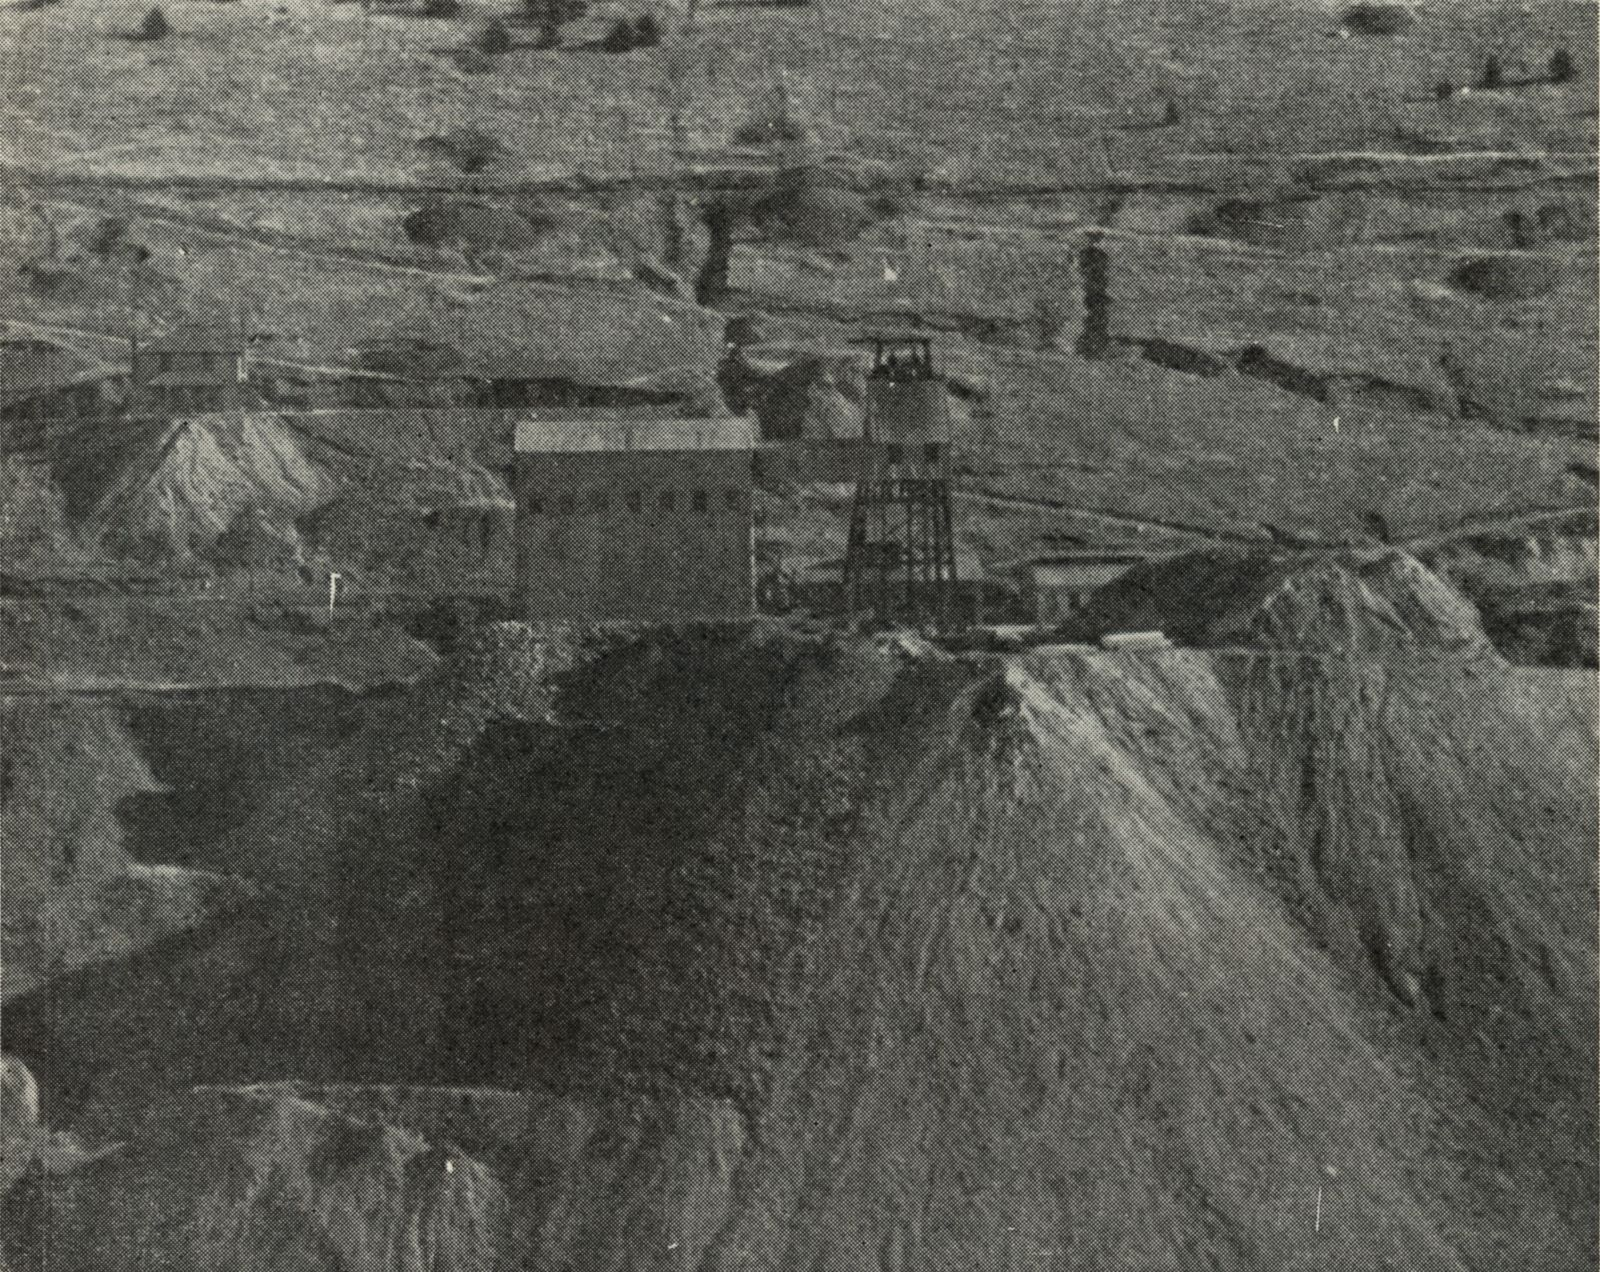 Not the best view of the El Paso Mine due to the not so good paper it was printed on, and also the use of a smaller image on a larger paper page, but it gives the impression on how the El Paso Mine must have looked around the late 1930's into possible the first or partly second year of the 1940's.